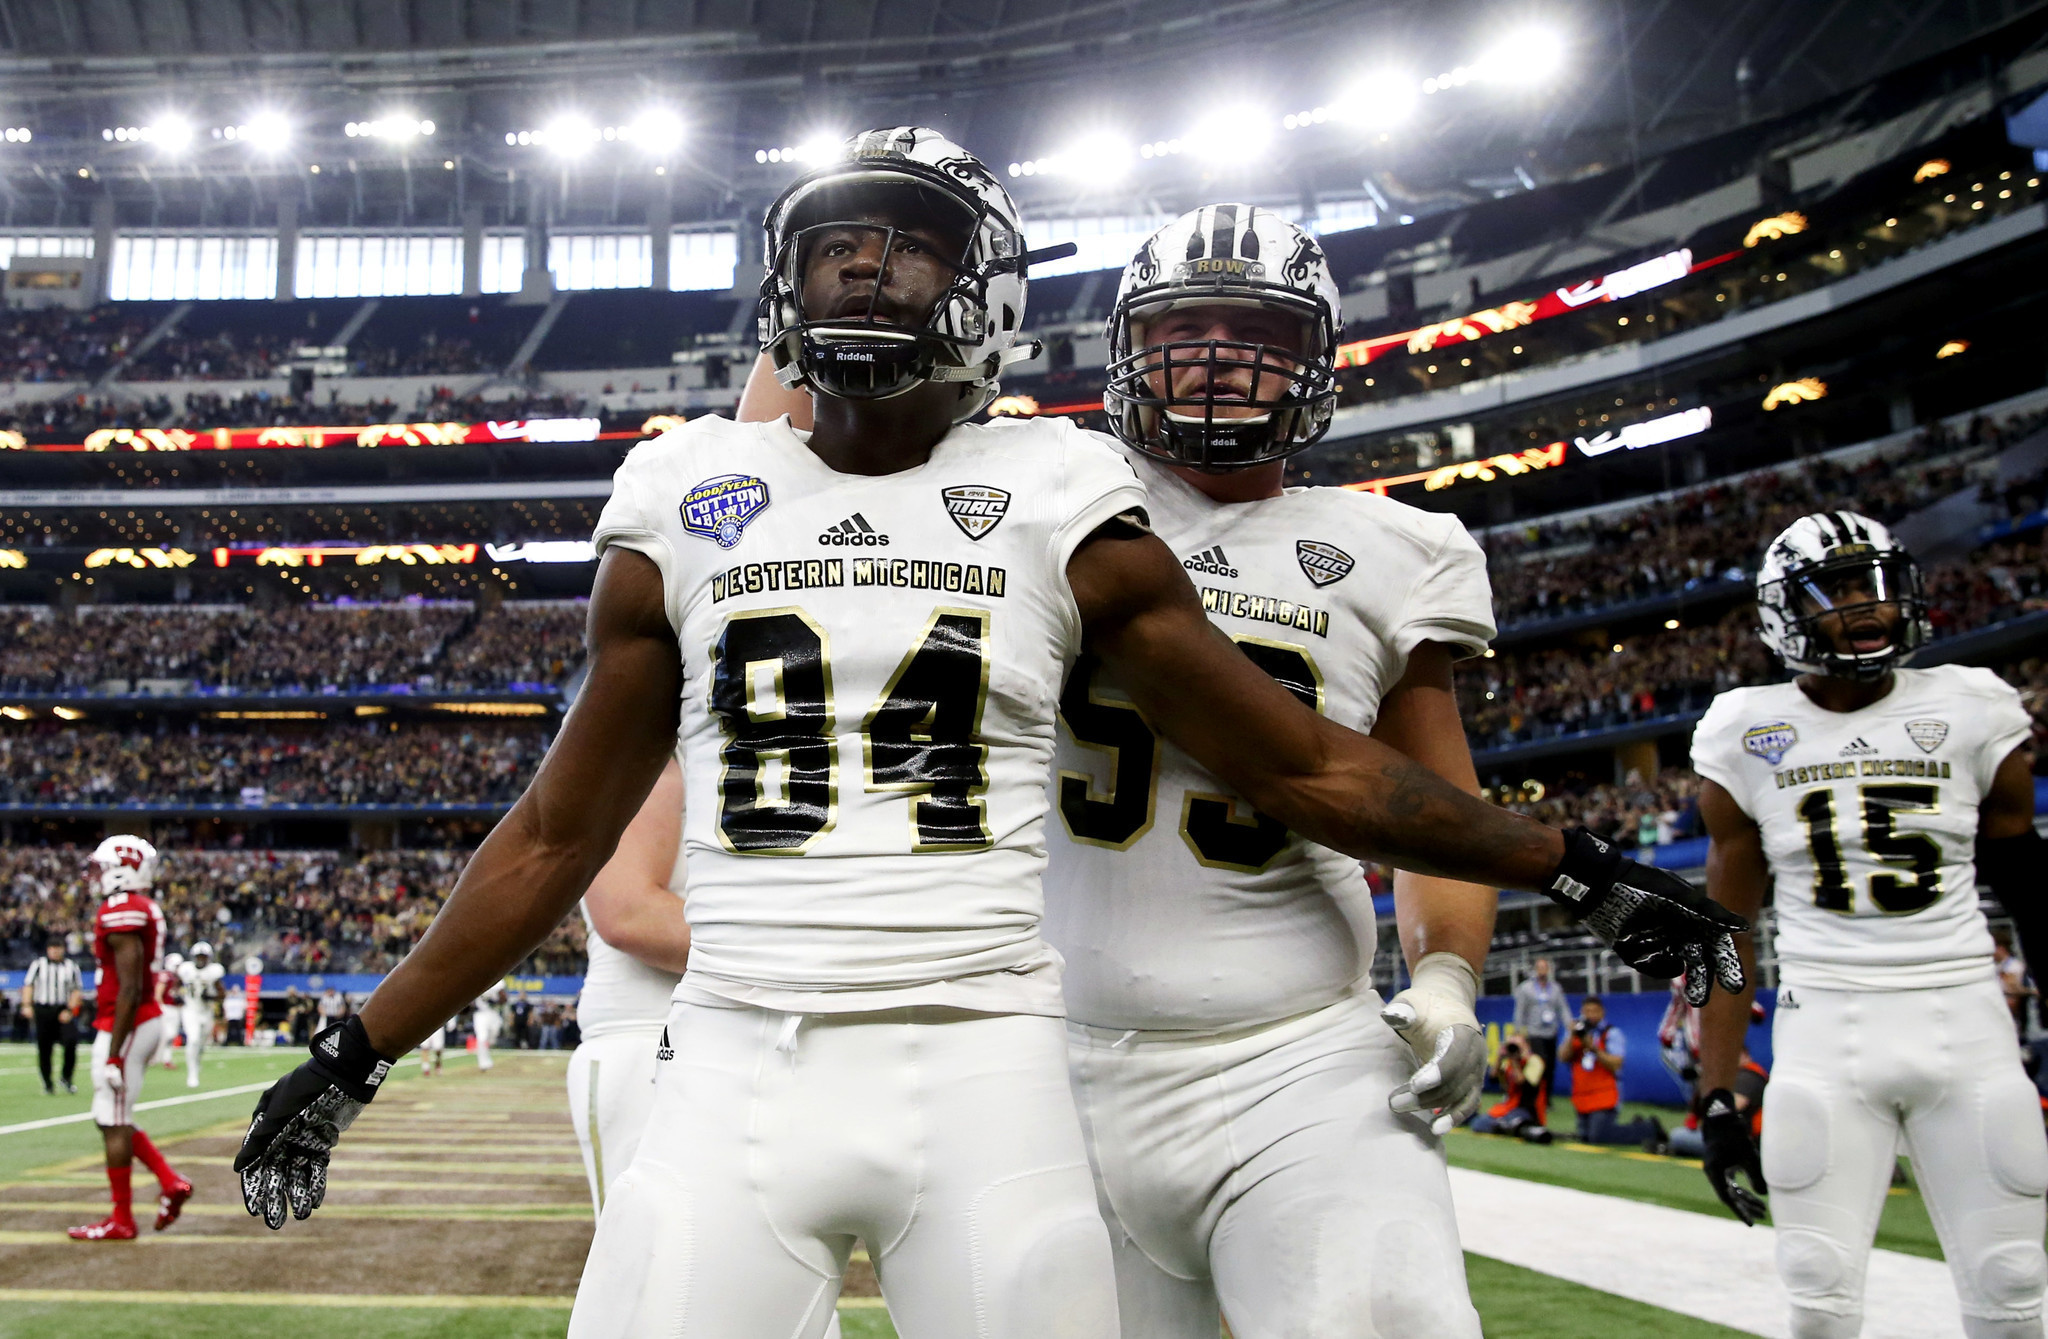 Philadelphia In The Fall Wallpaper Nfl Mock Draft 2017 Four Round Projections The San